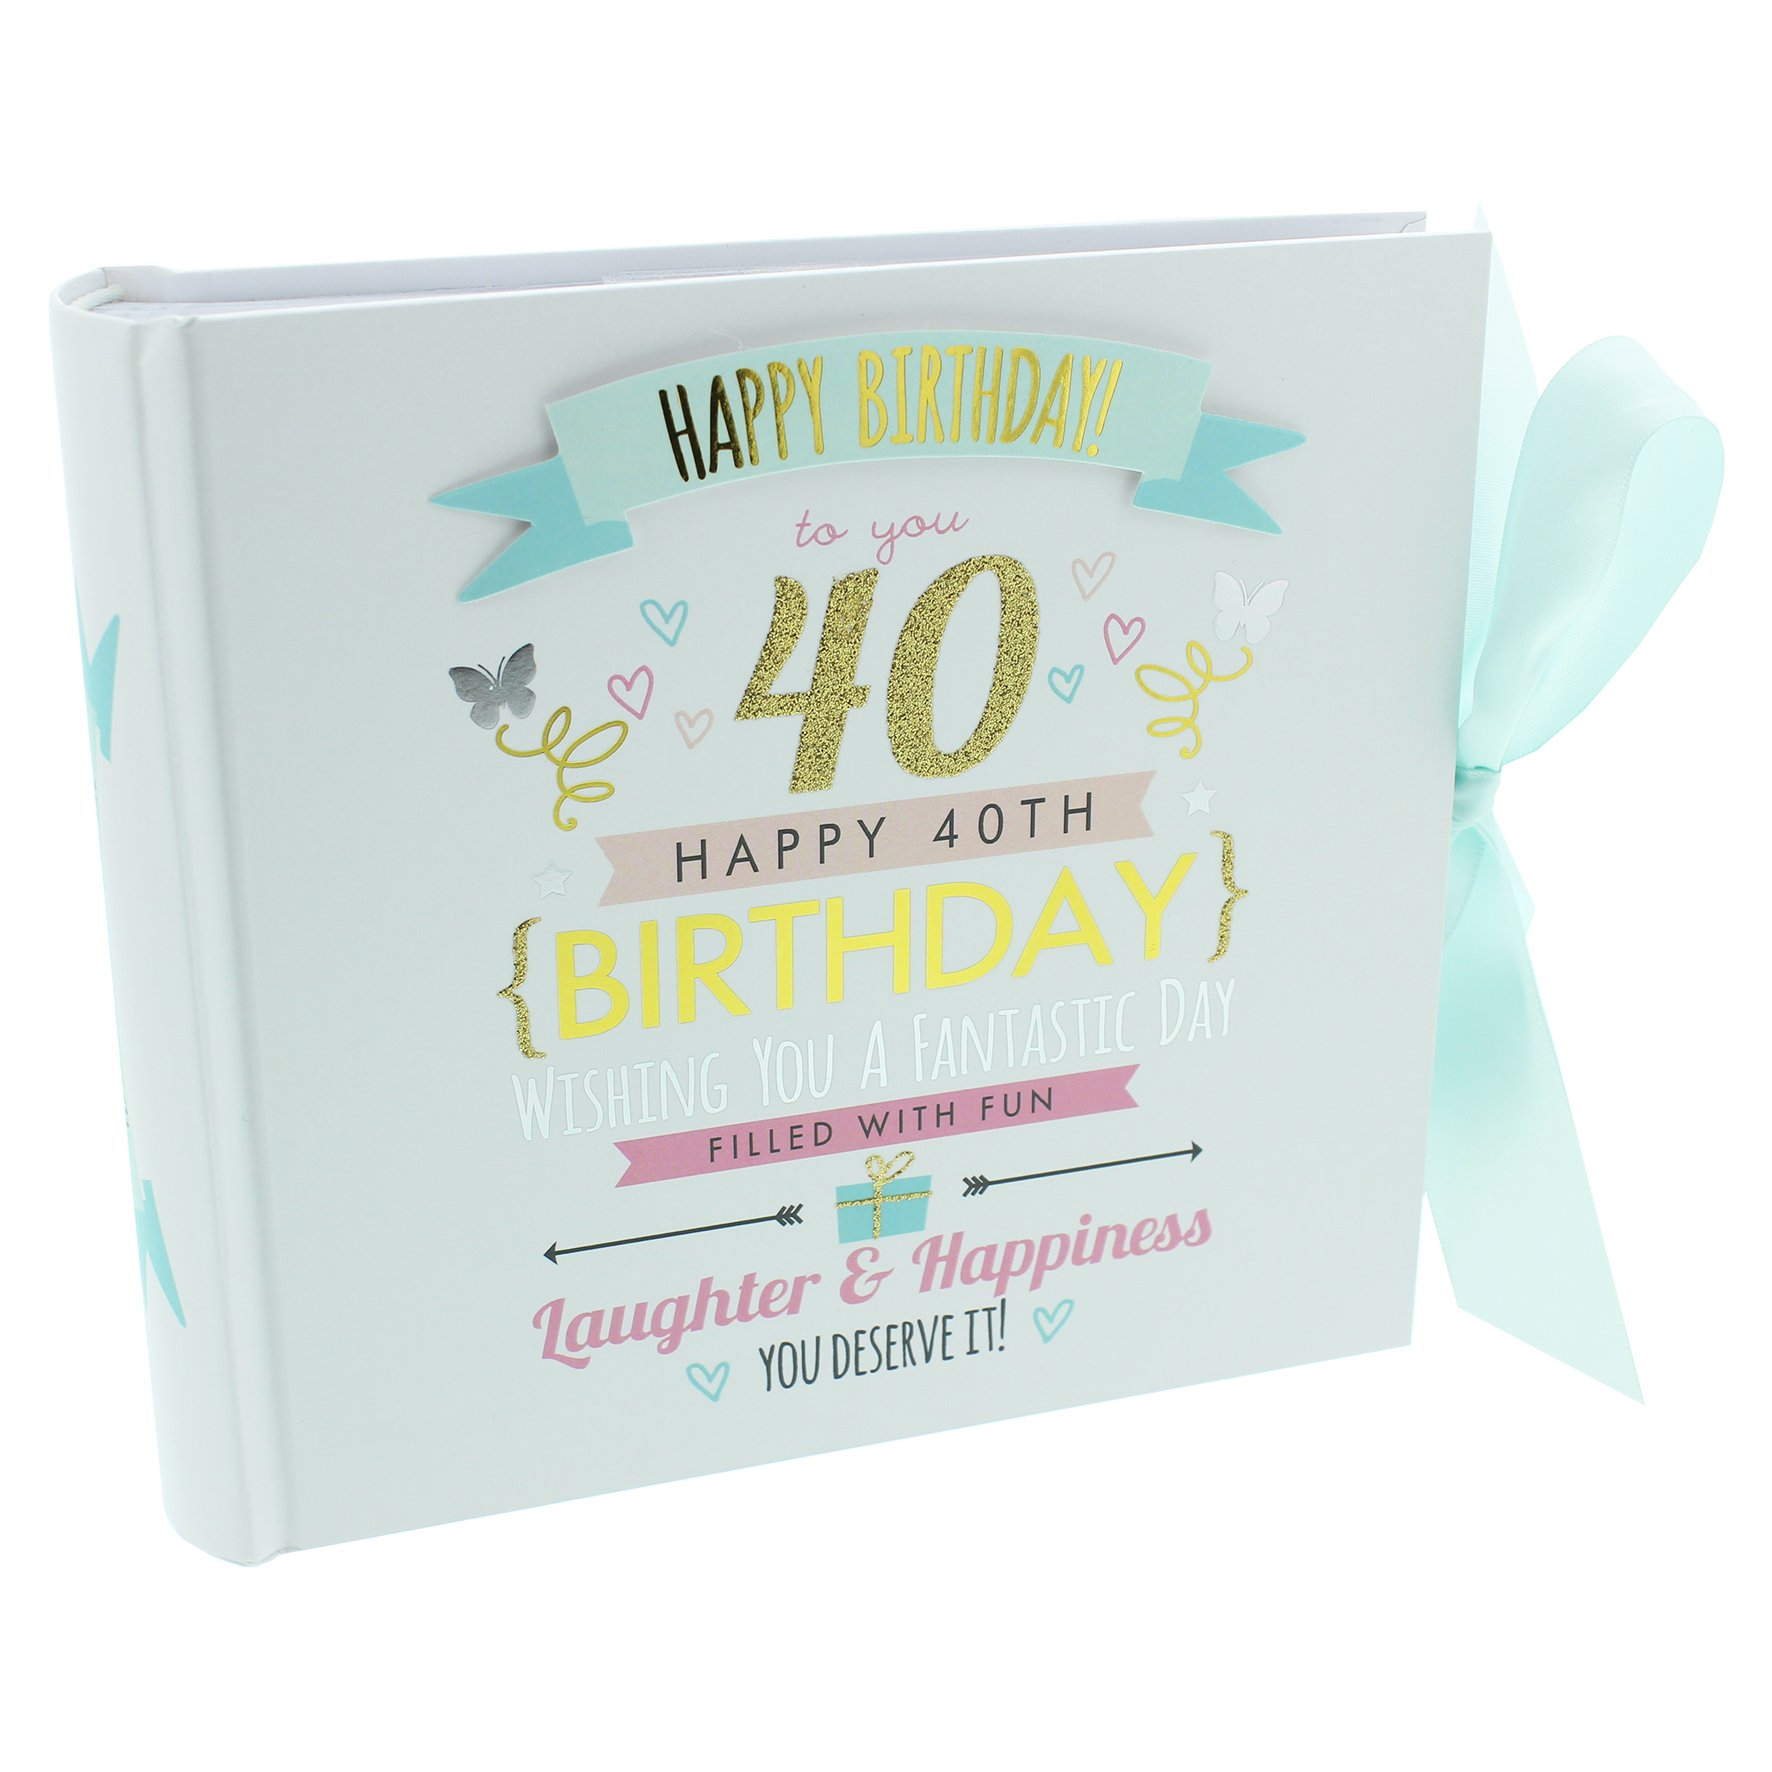 Oaktree Gifts 40th Birthday Girl Photo Album Hold 4 x 6 by Oaktree Gifts (Image #1)